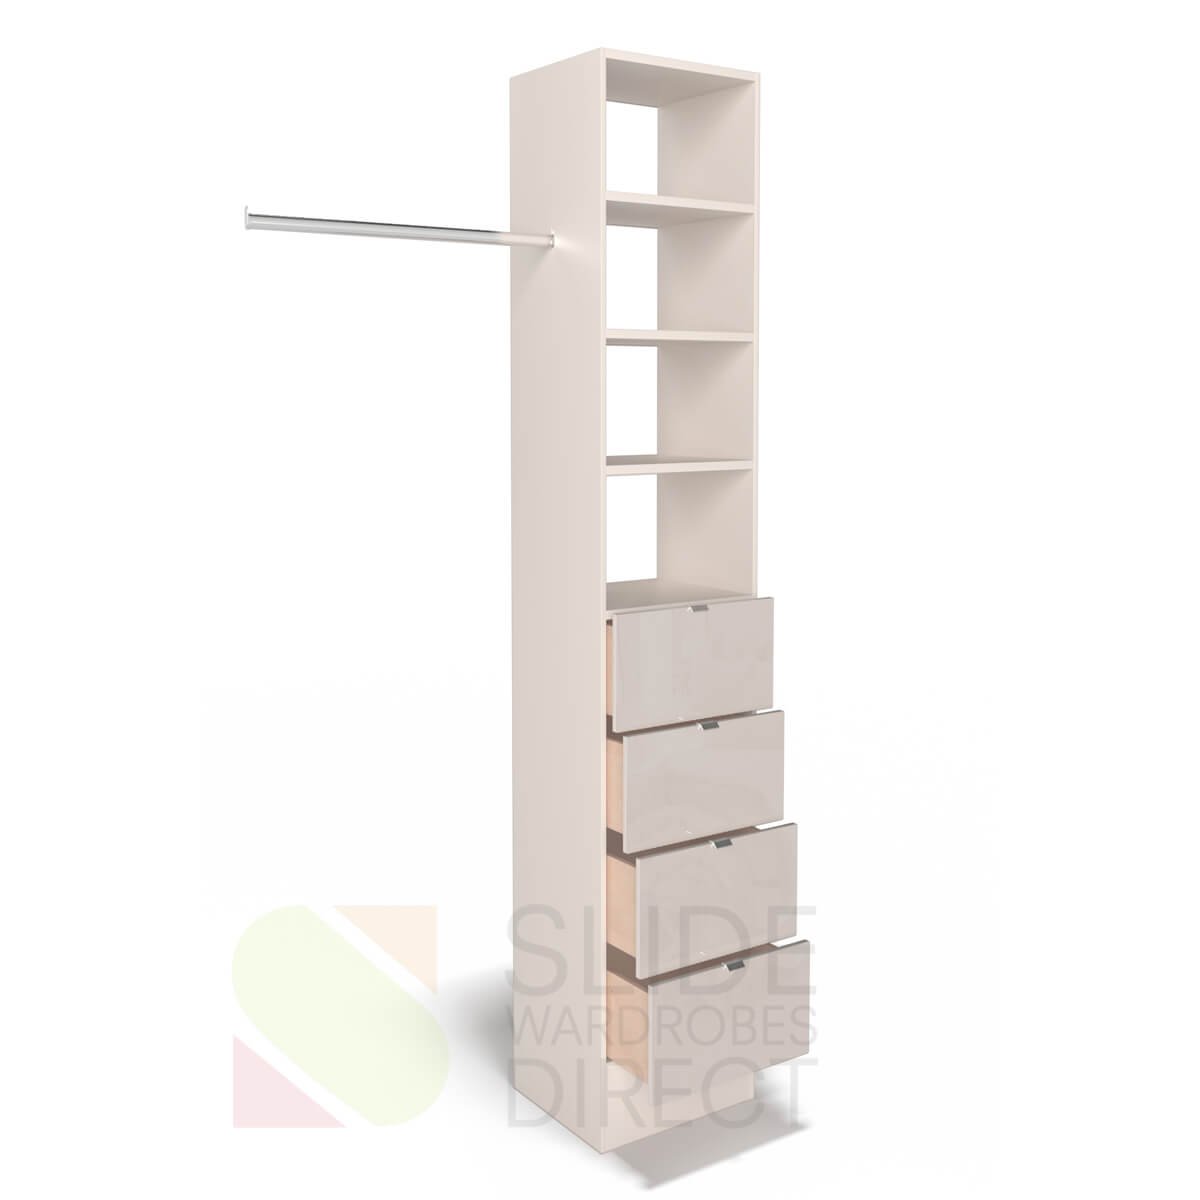 Cashmere tower with Cashmere glass drawer fronts